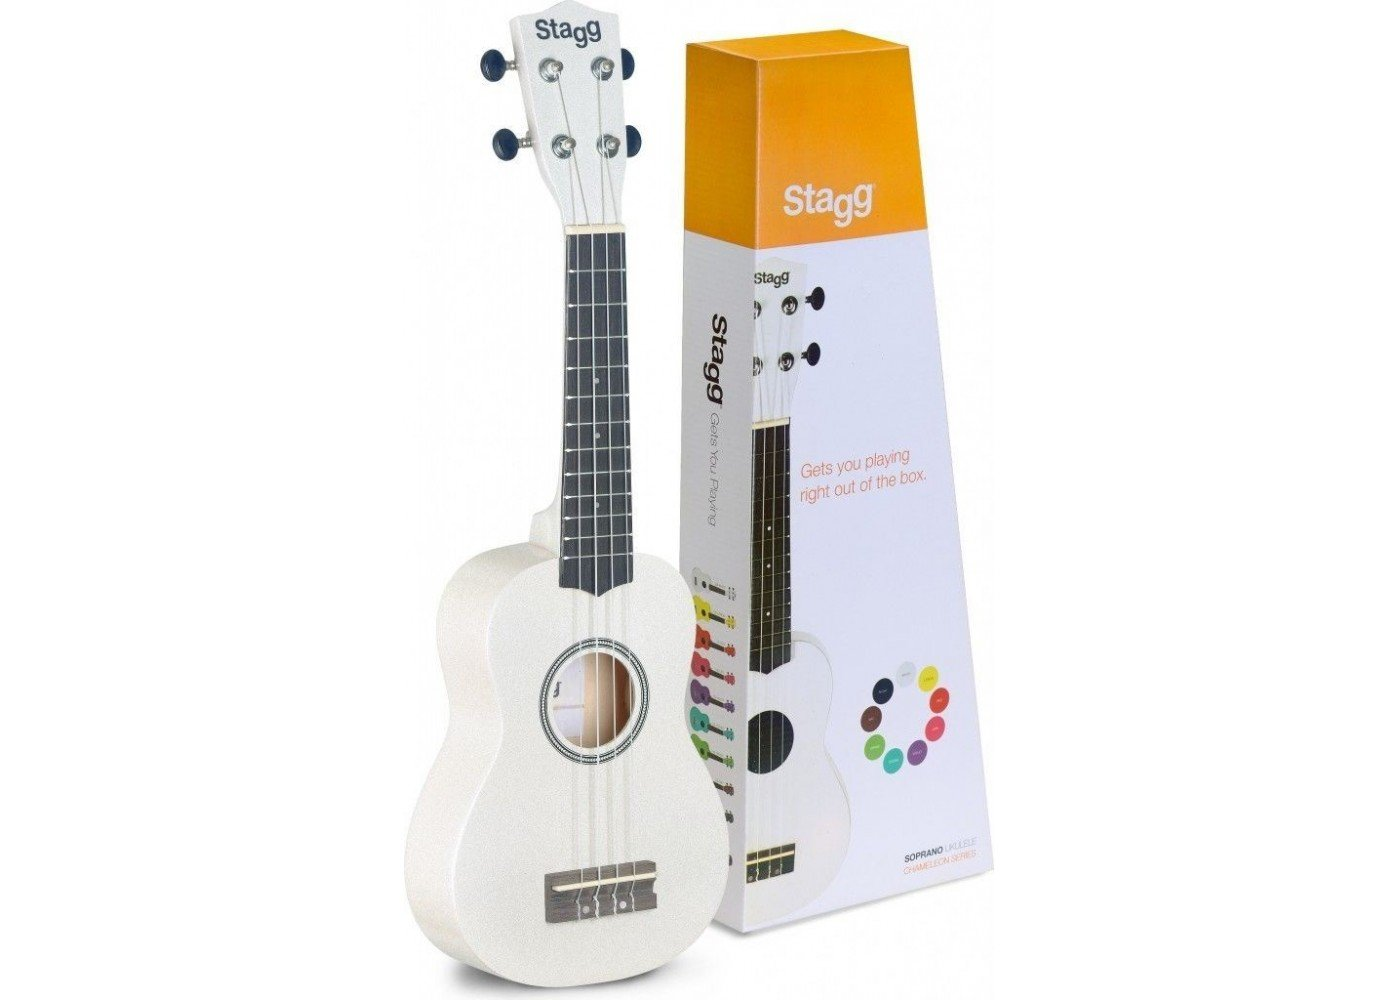 Stagg Soprano Ukulele - White - w/Bag